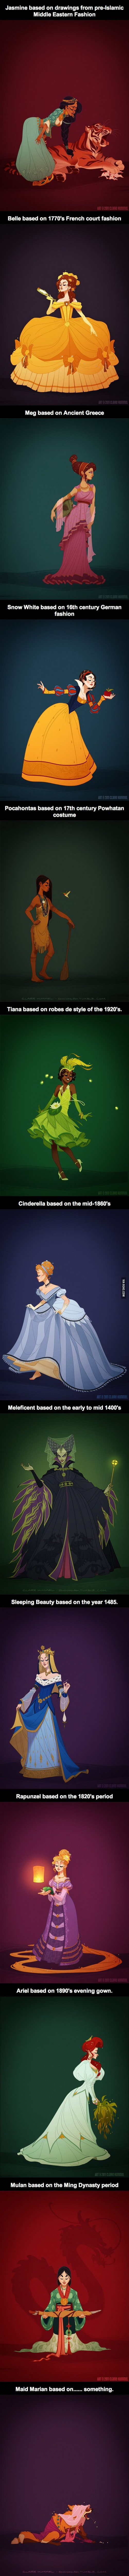 Disney Princesses Based on Historical Period Fashion.